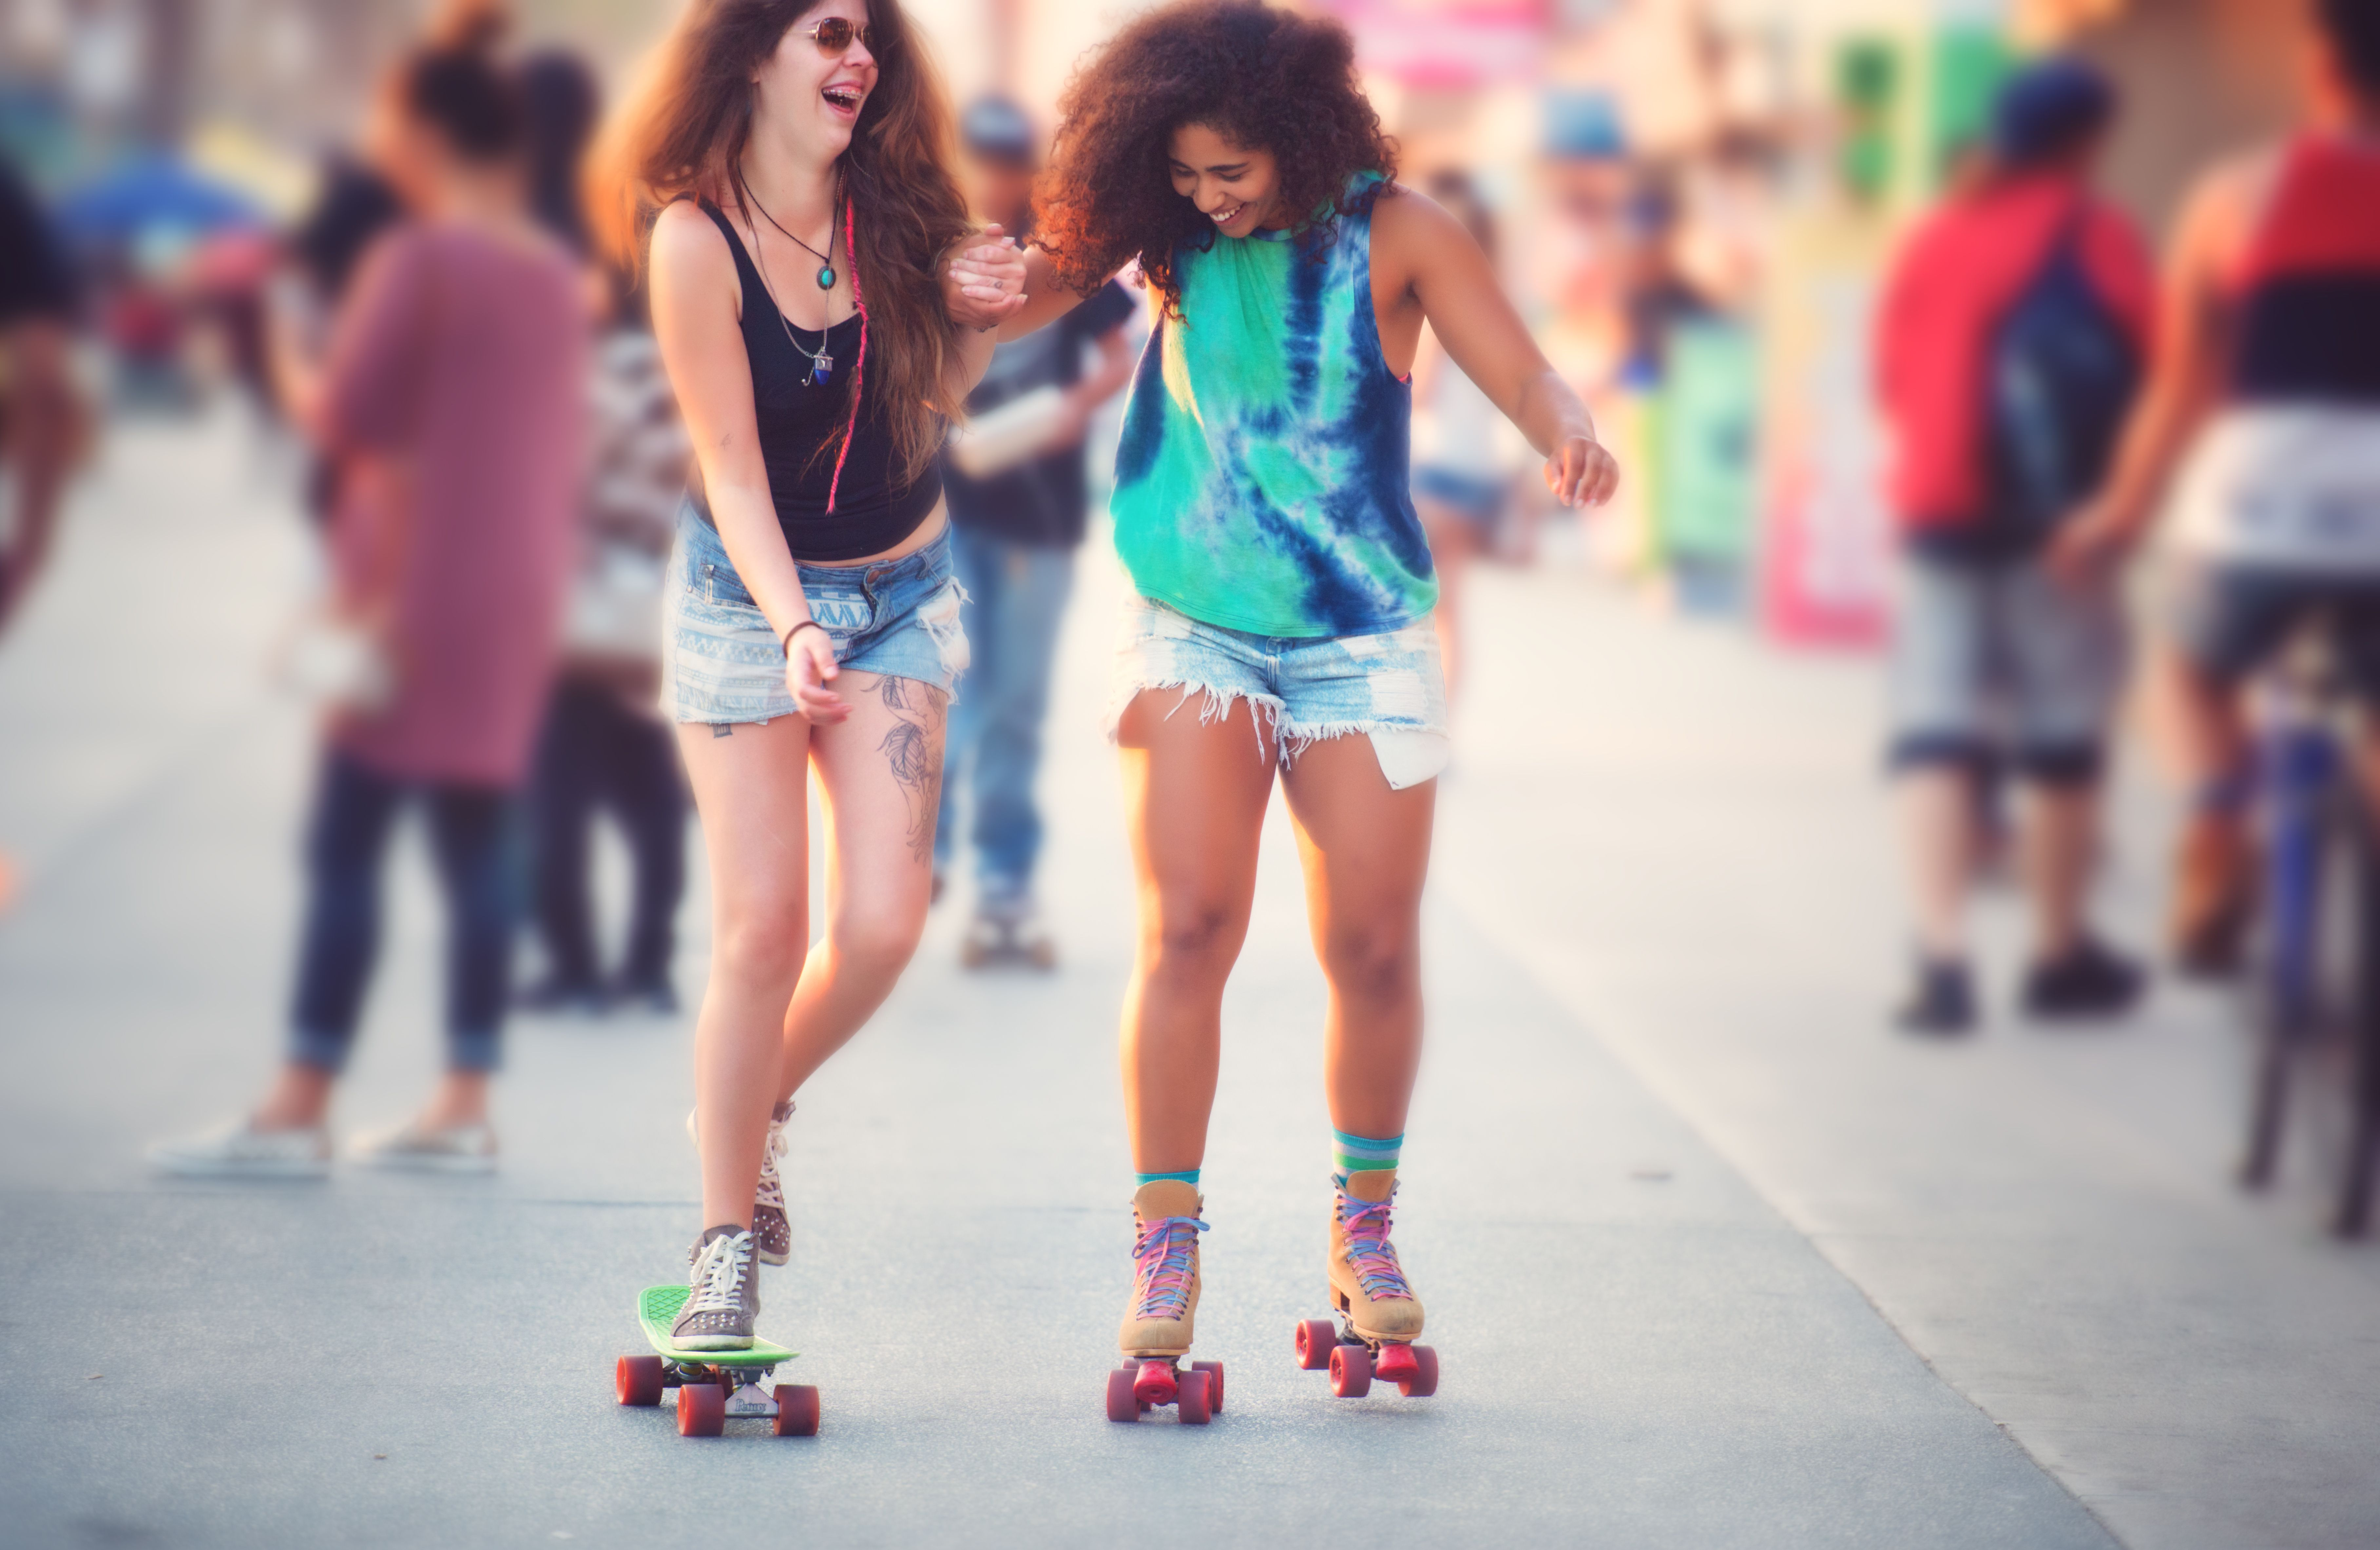 A laughing young woman attempts to learn skateboarding on the Venice Beach boardwalk with her girlfriend's help.